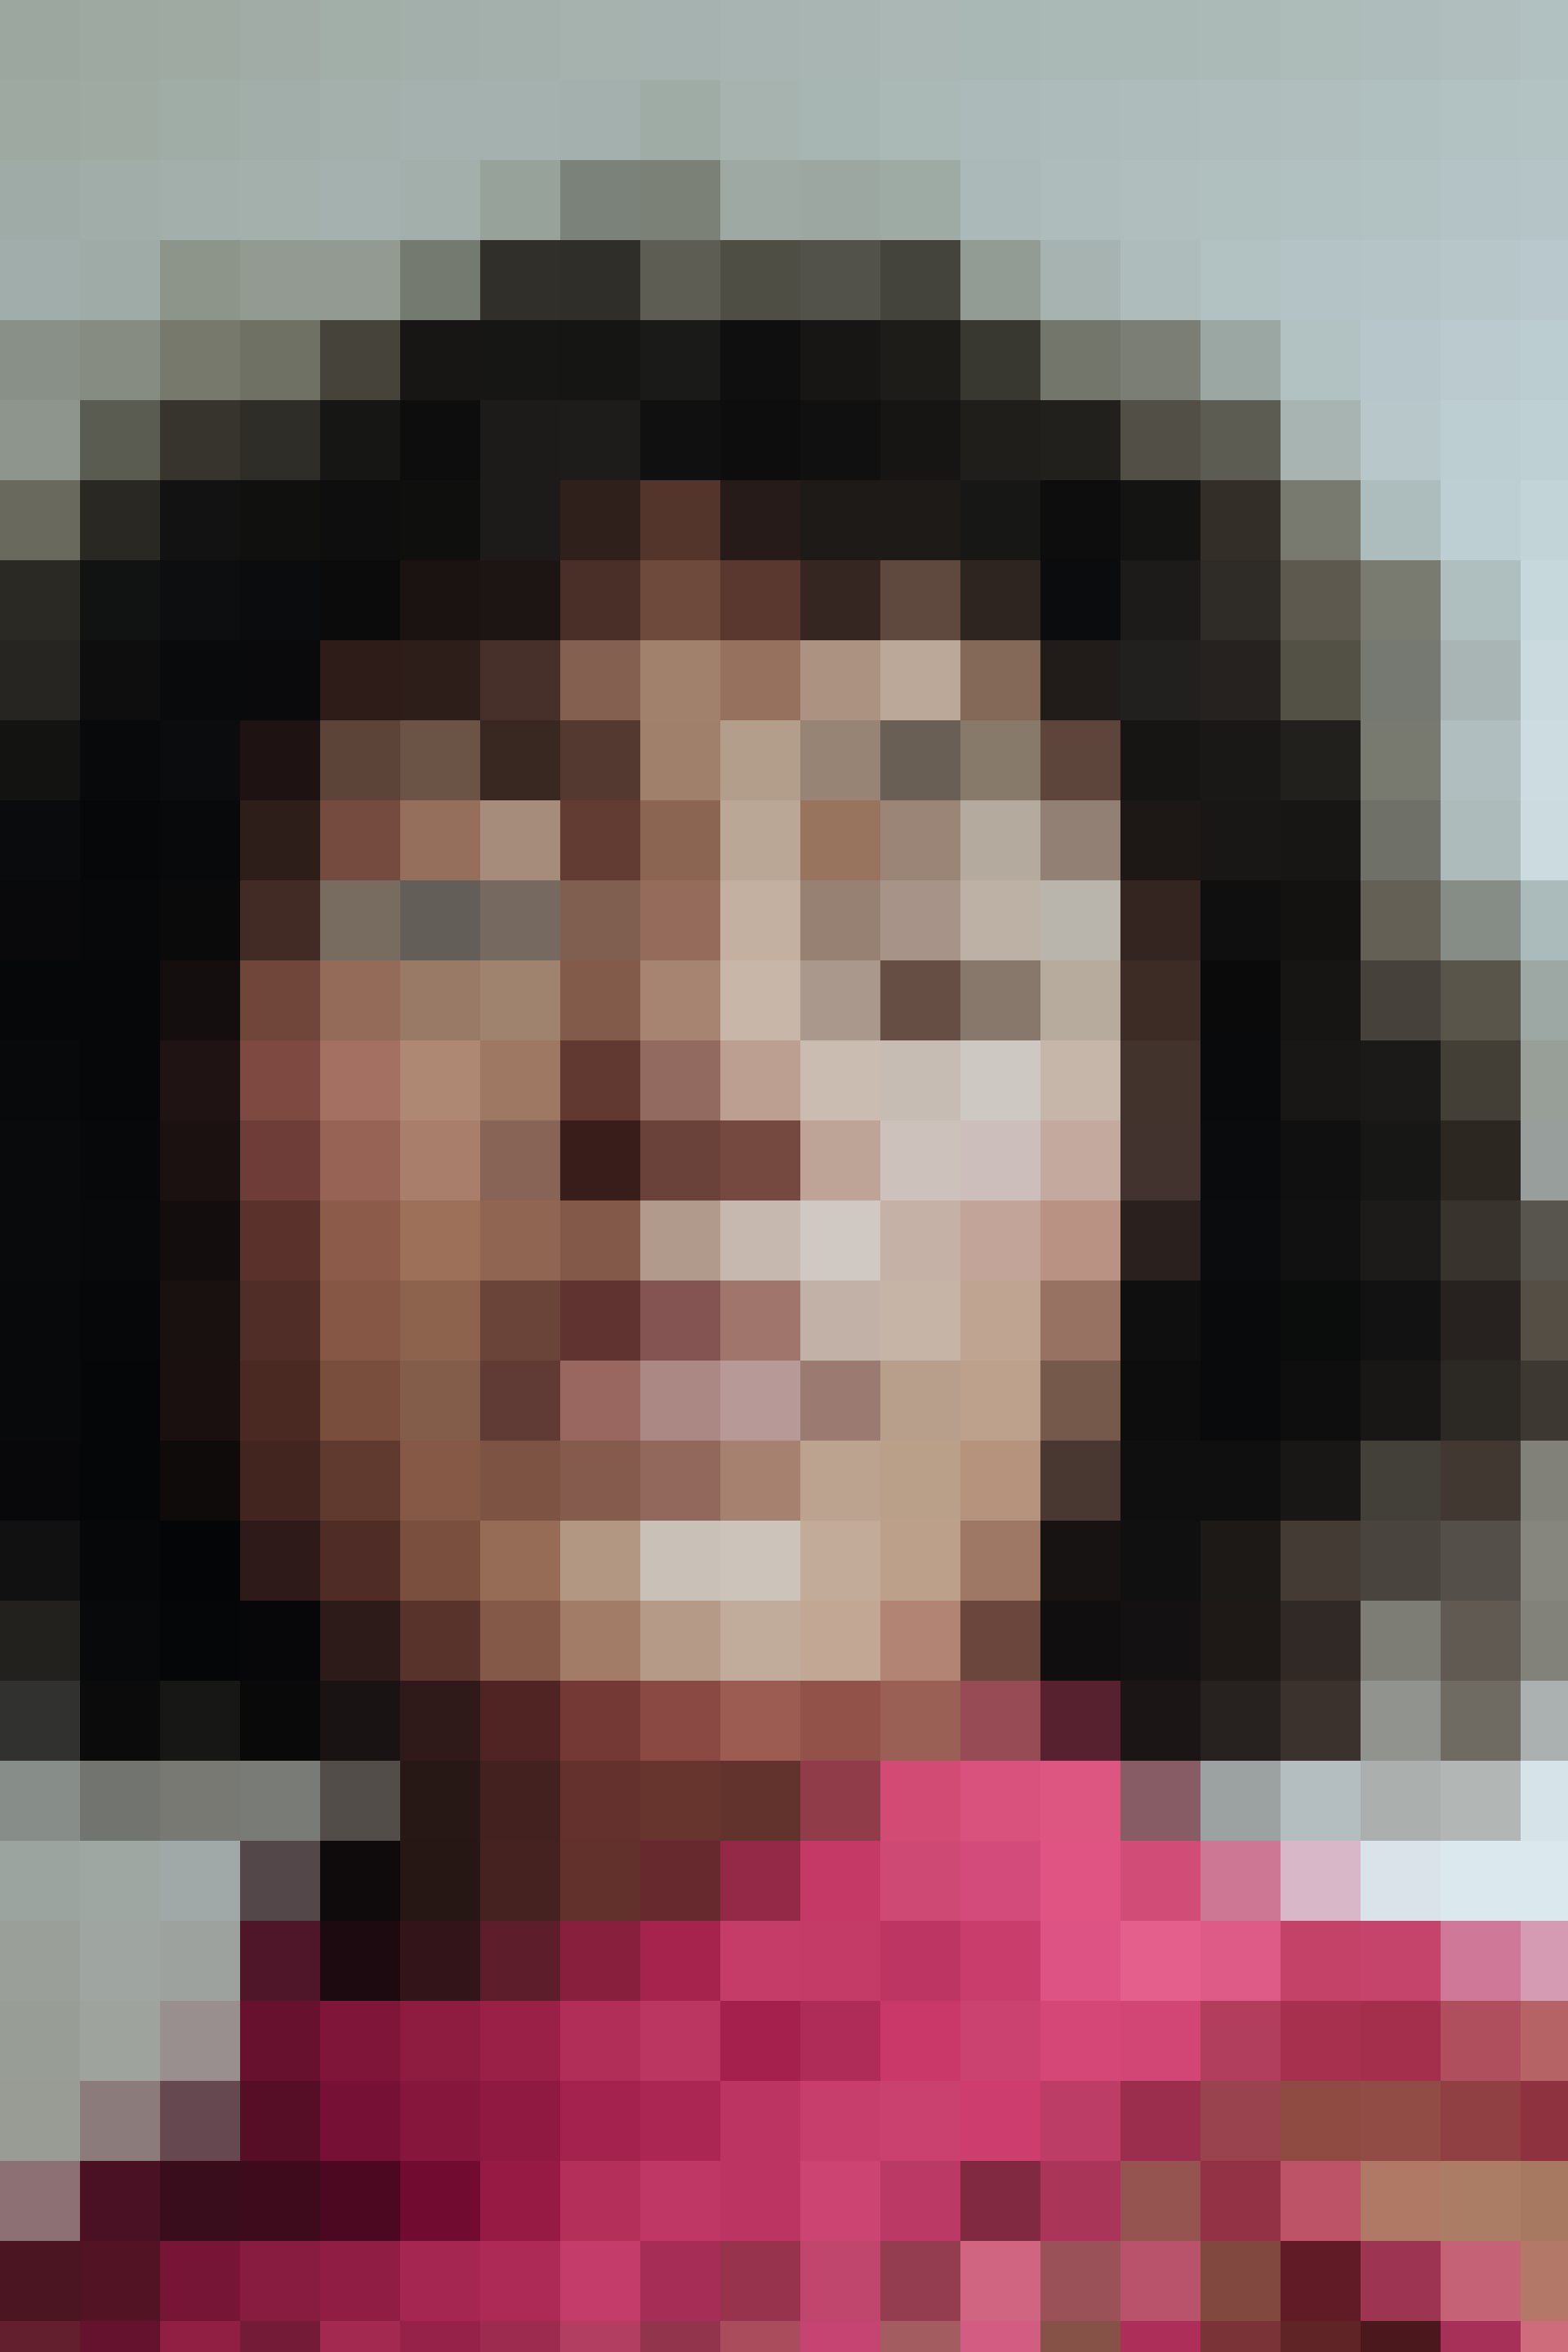 The pixelated face of a woman